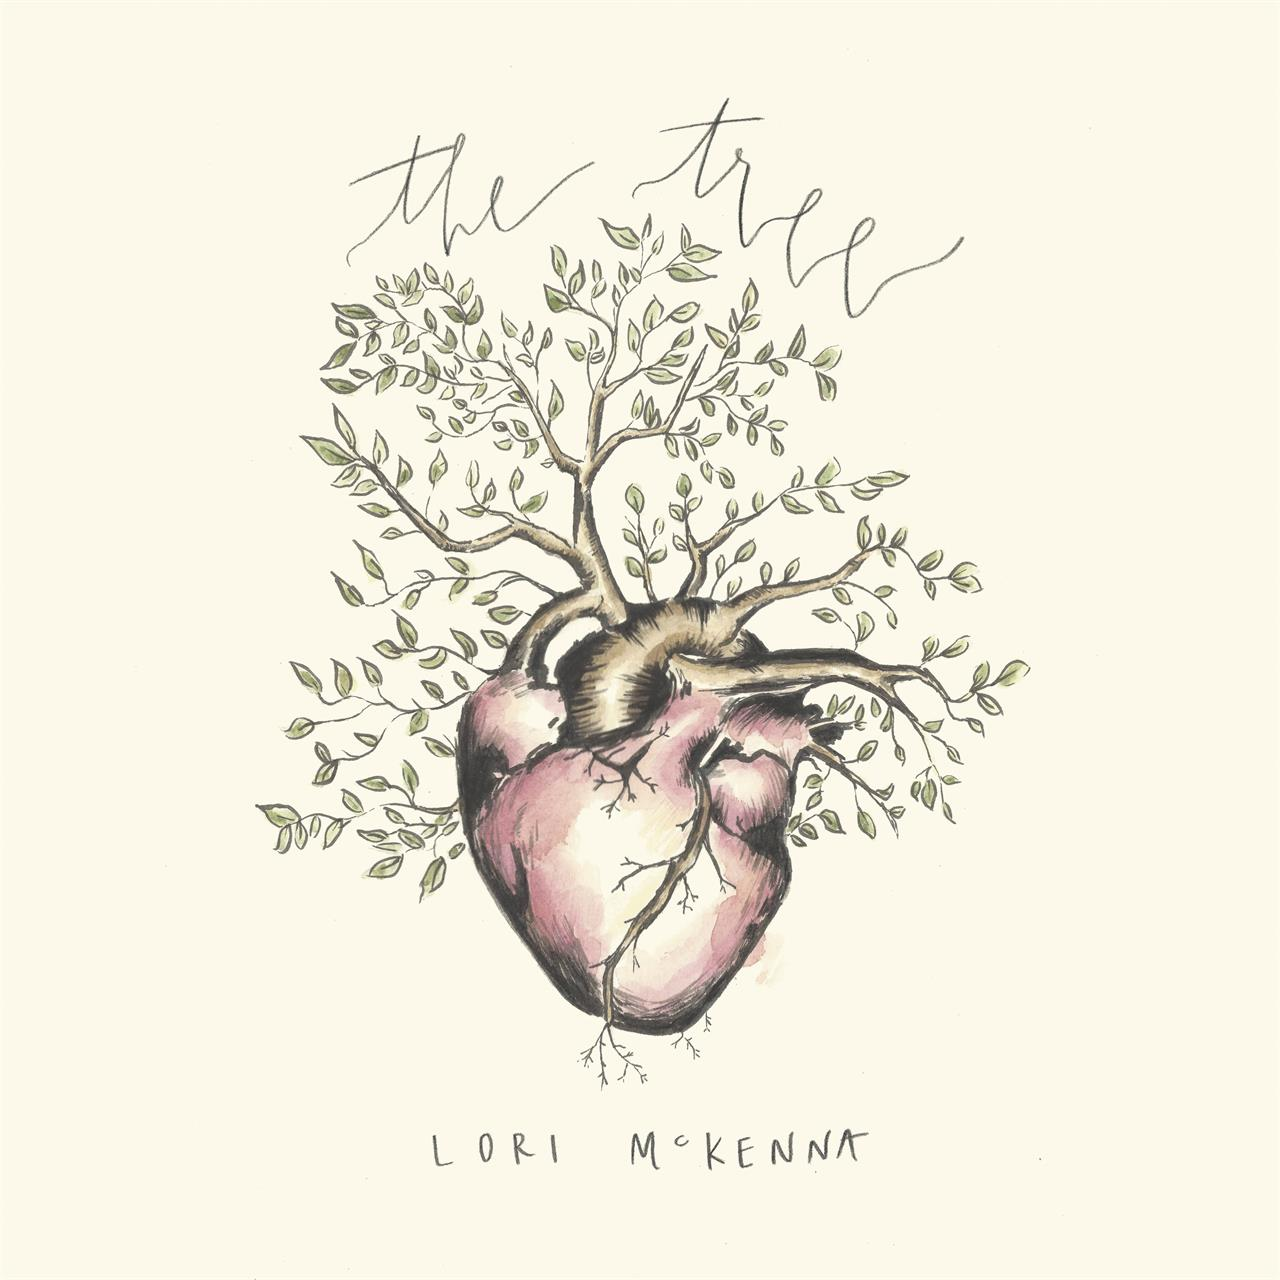 review lori mckenna has be e a must hear songwriter the answer St. Armands Circle this cover image released by cn records via thirty tigers shows the tree a release by lori mckenna cn records via thirty tigers via ap